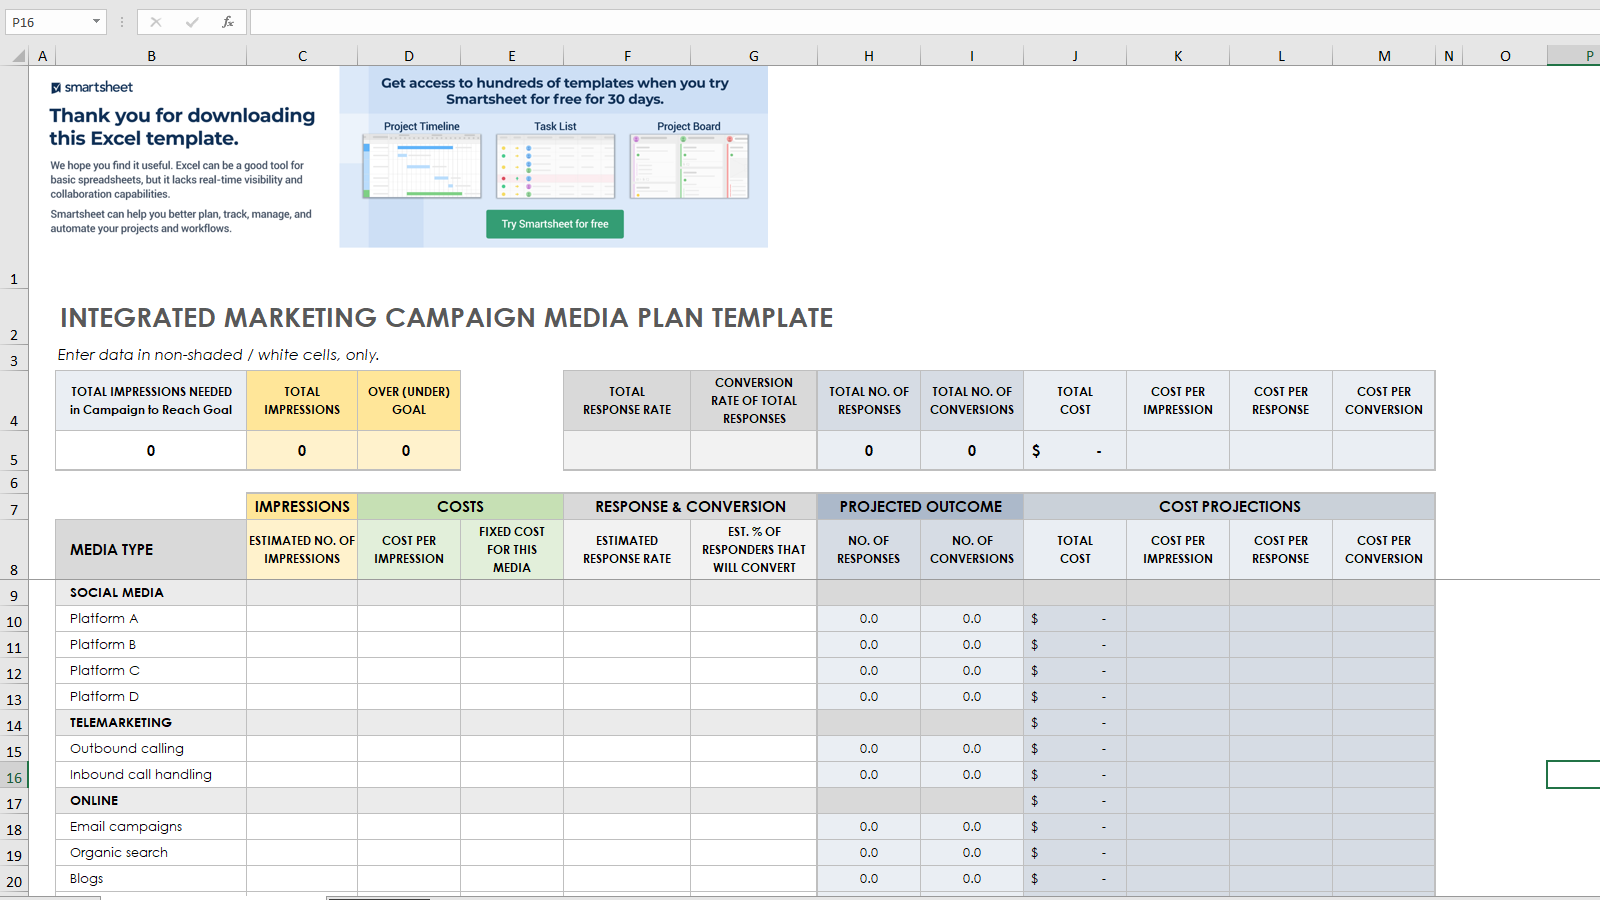 Integrated Marketing Campaign Media Plan Template